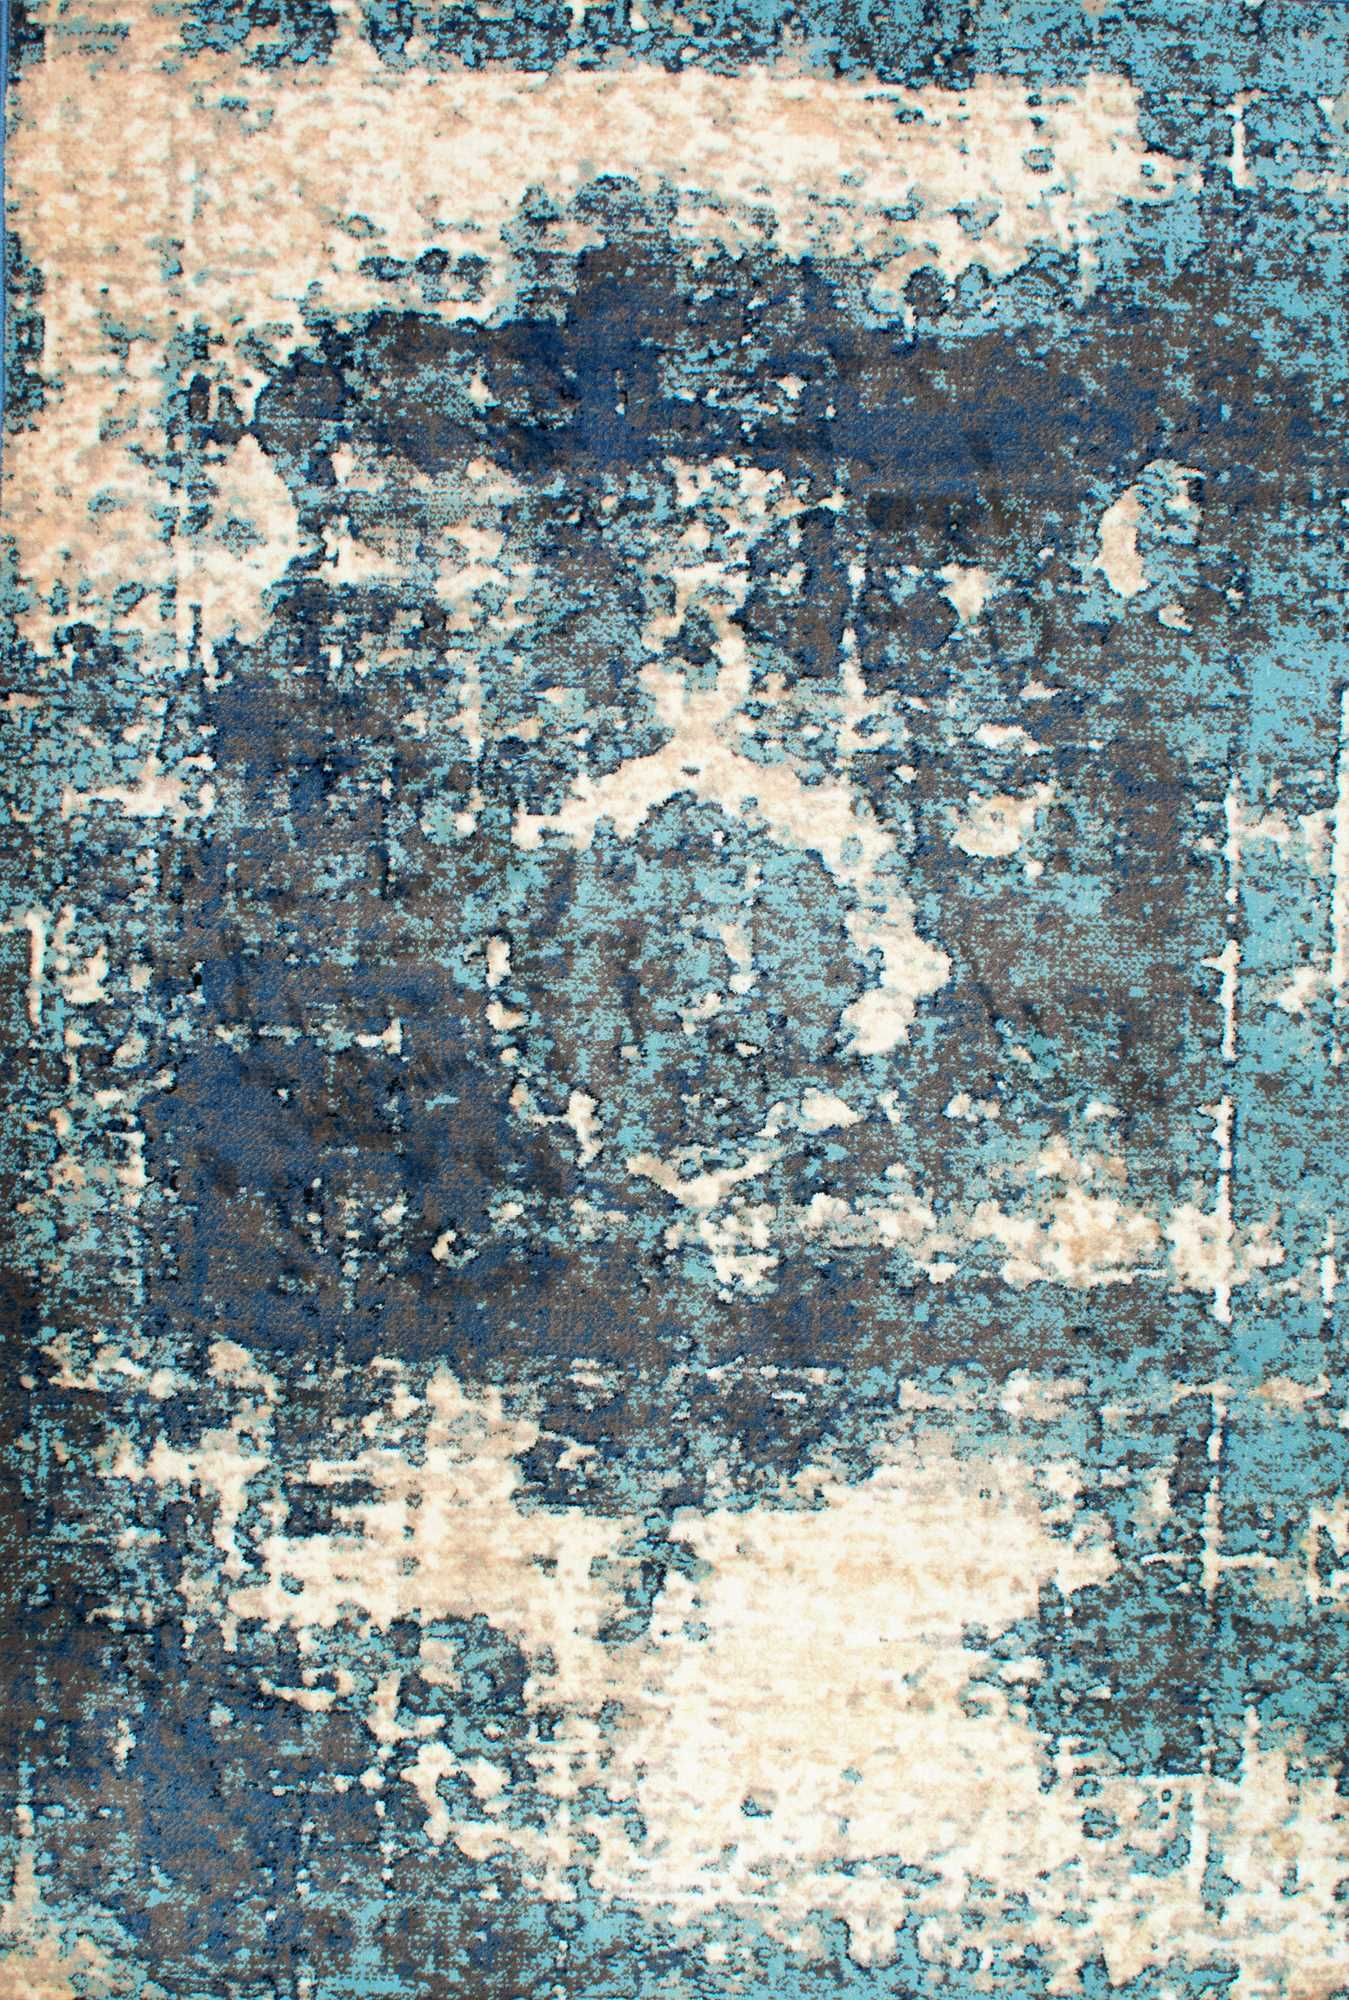 Tracce TC01 Distressed Foggy Medallion Rug | The River House ...